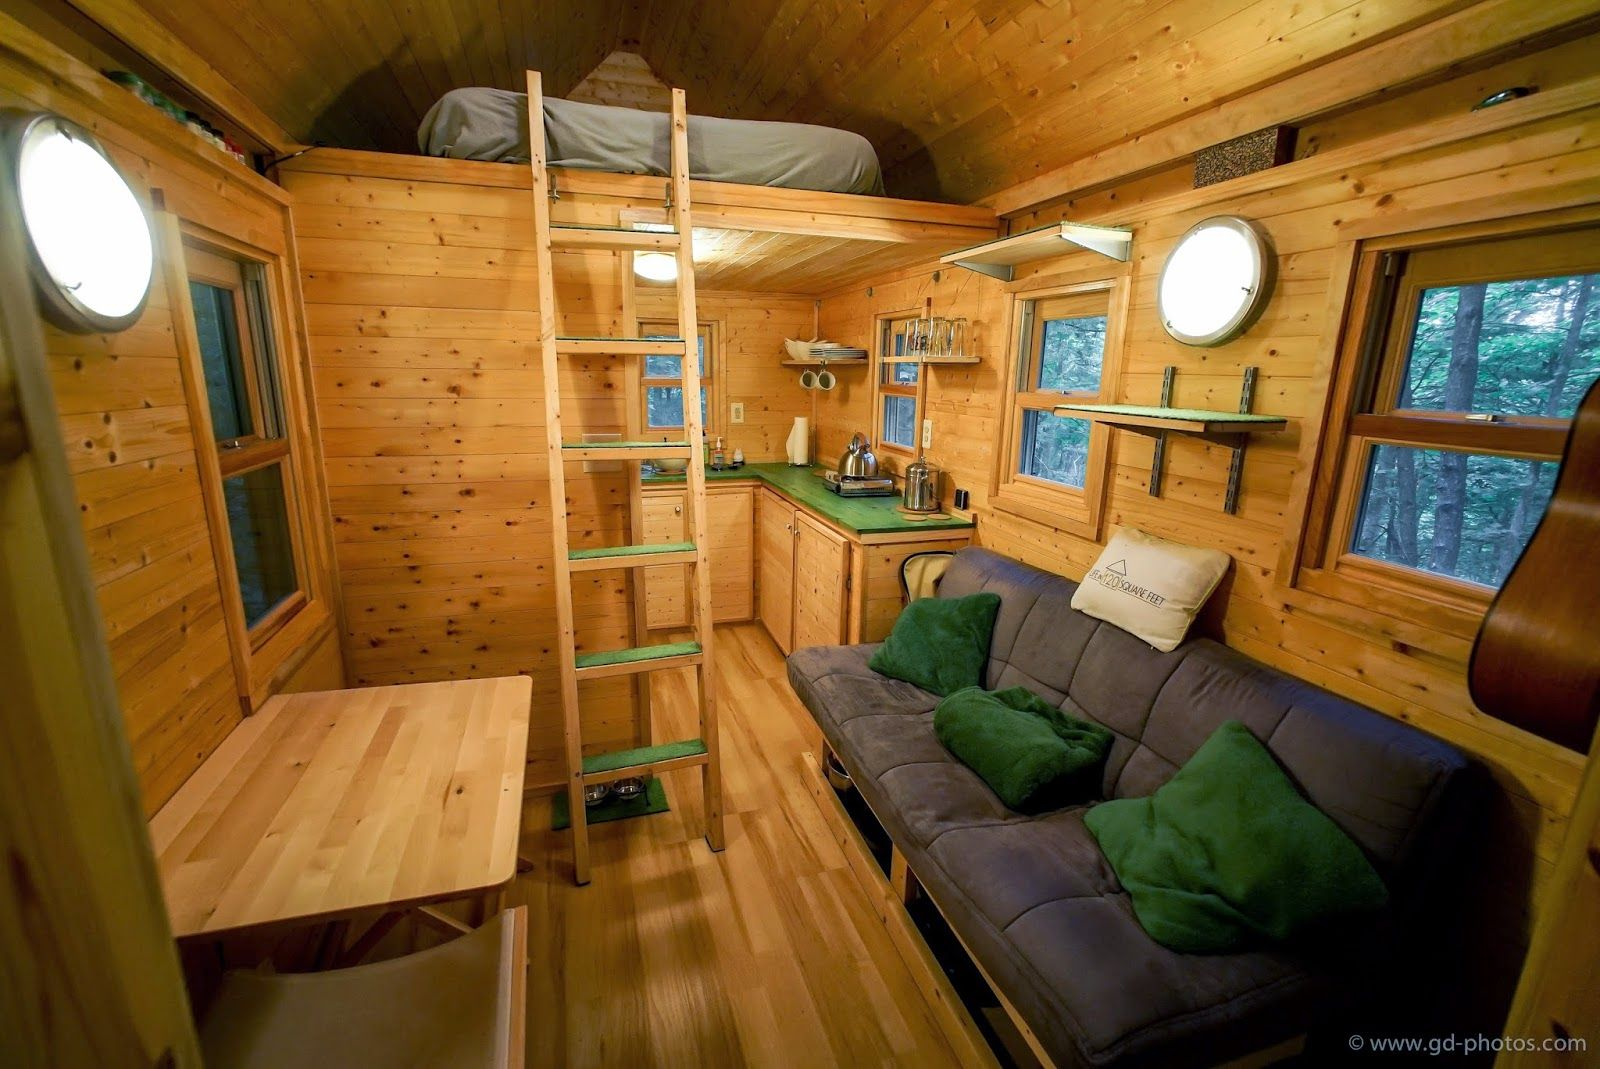 Life In 120 Square Feet Tiny House Giant Journey S Trip To 120 Squre Feet Shed To Tiny House Tiny House Layout Tiny House Bathroom